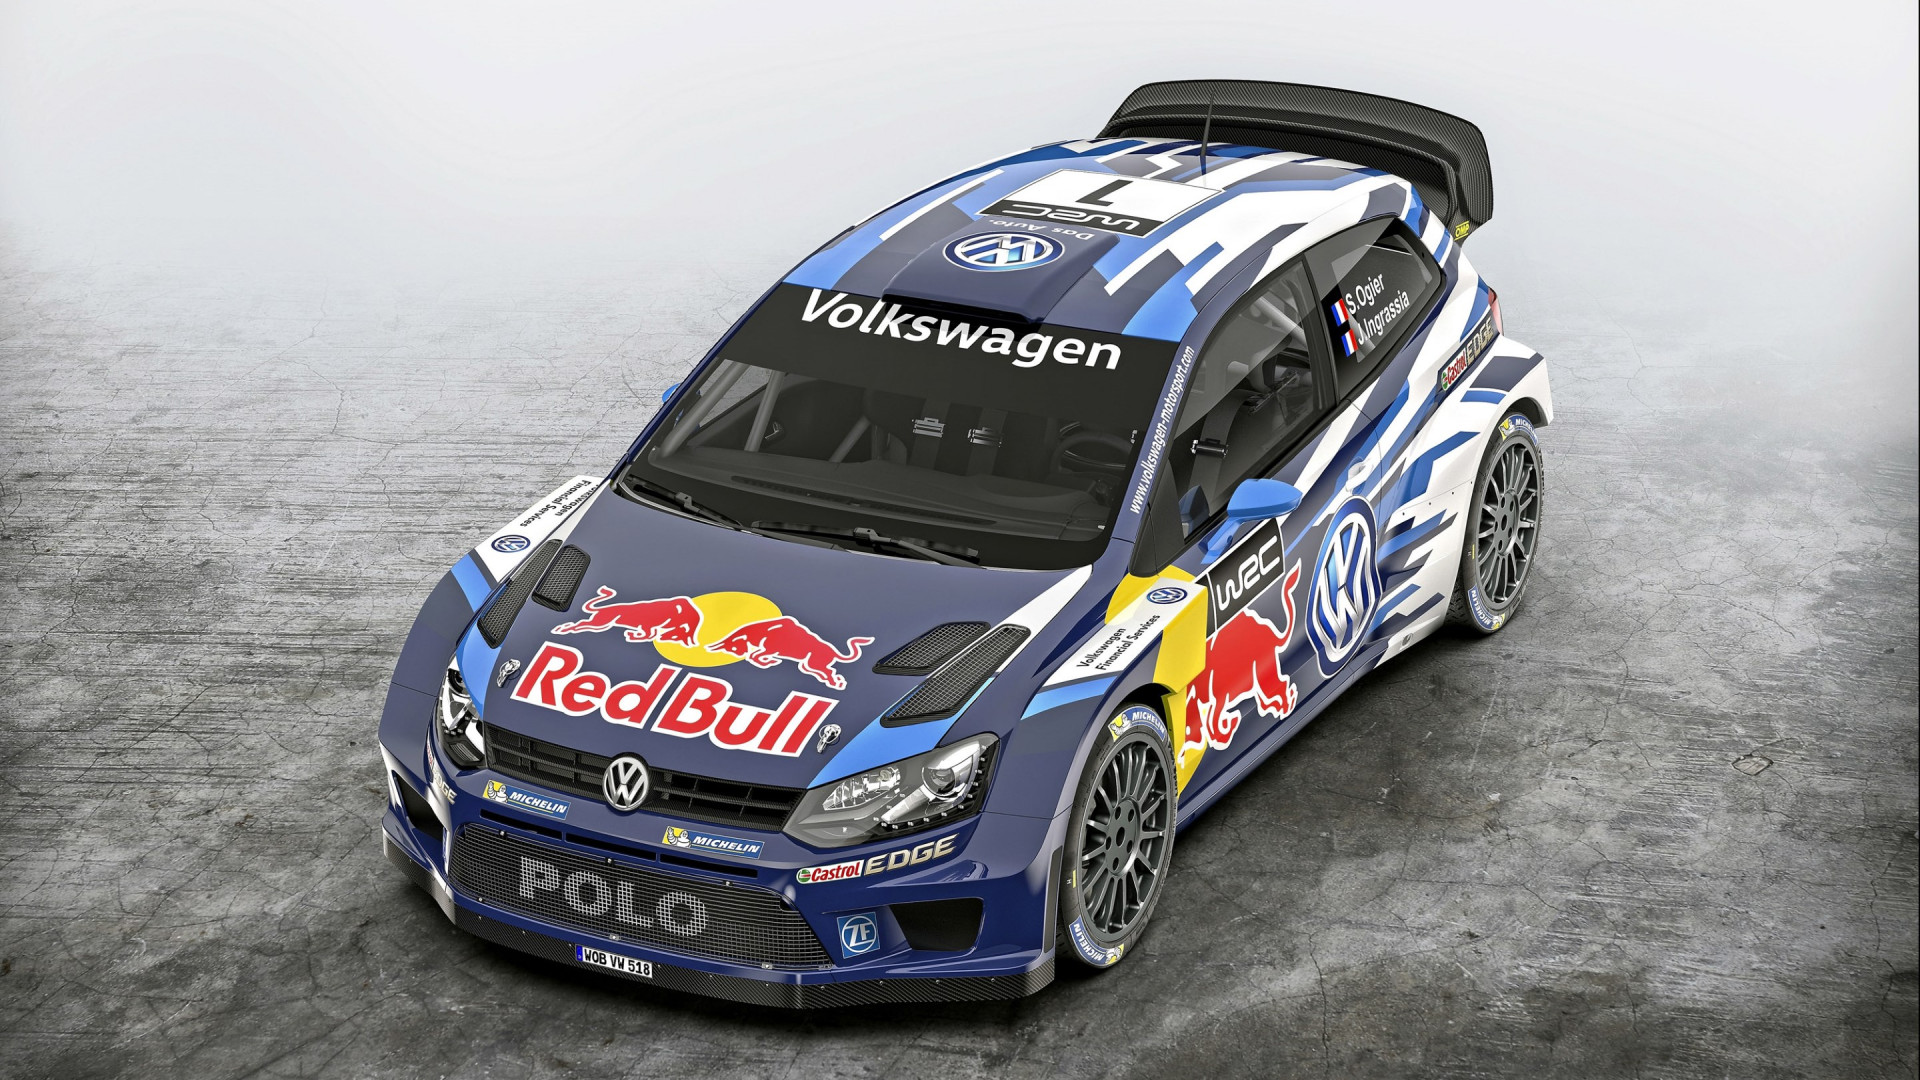 Volkswagen Polo R WRC wallpaper 1920x1080